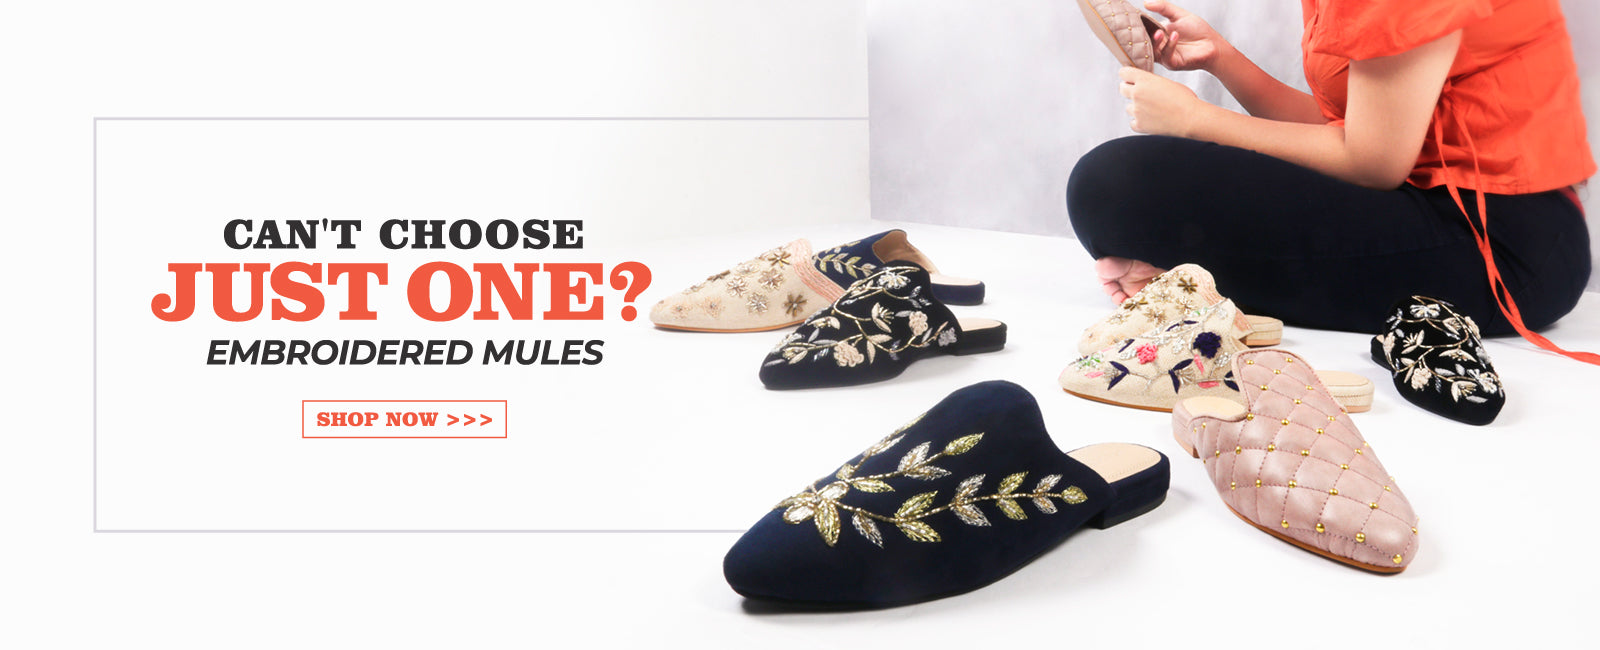 can't choose just one embroidered mules